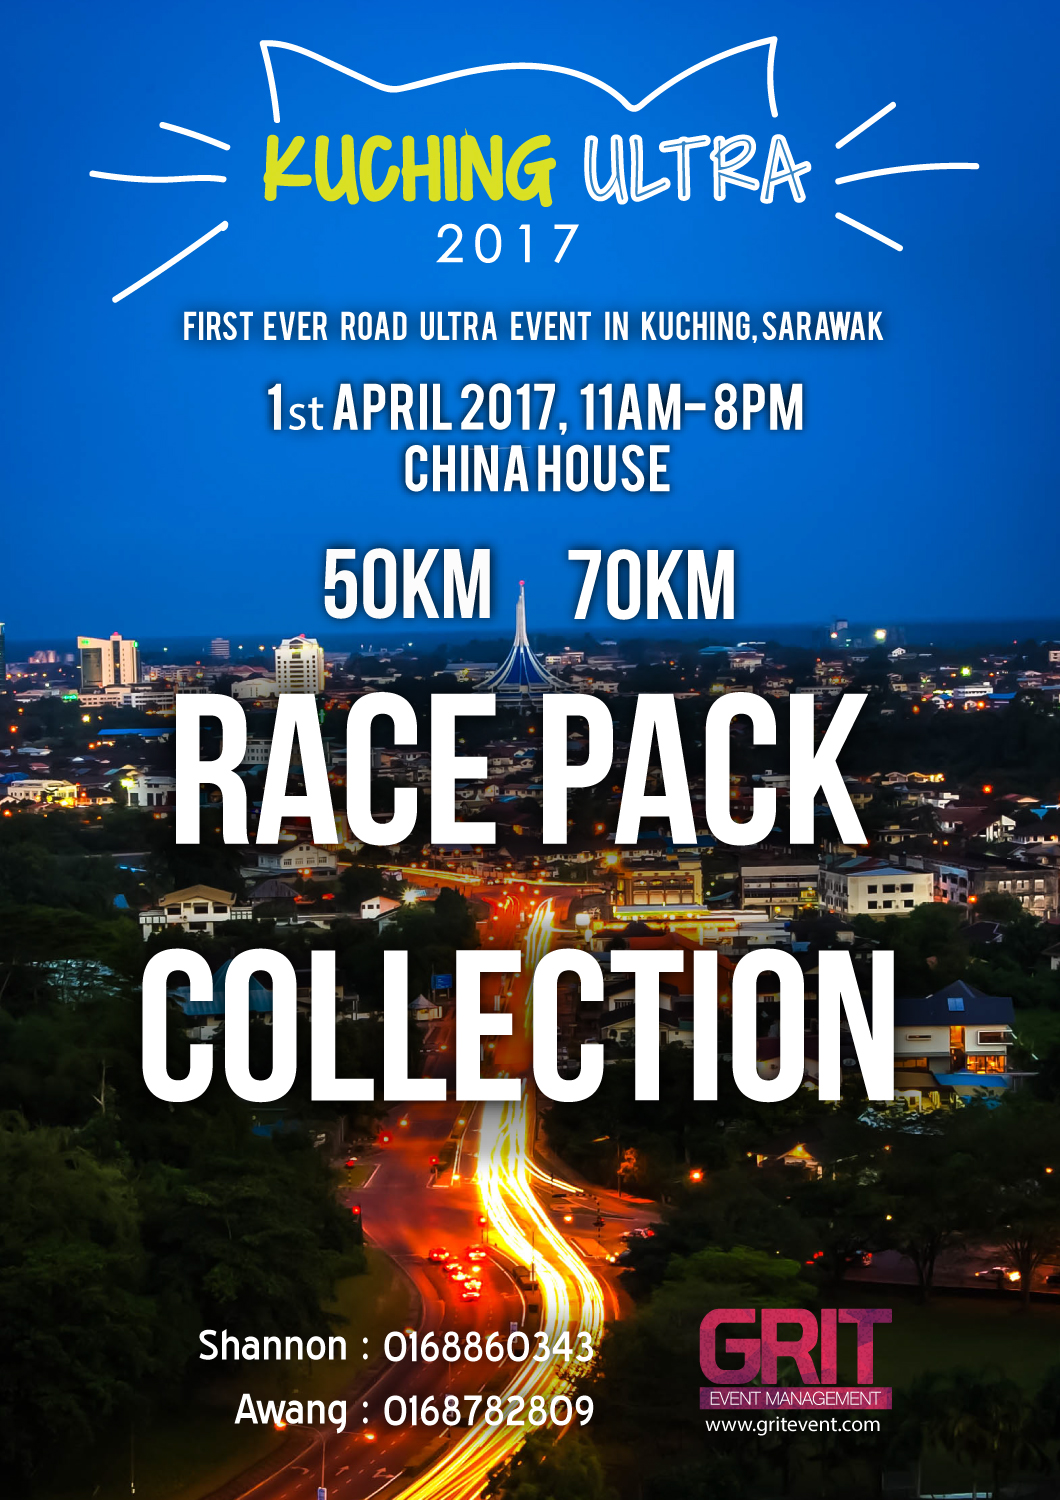 racepack-collection-poster